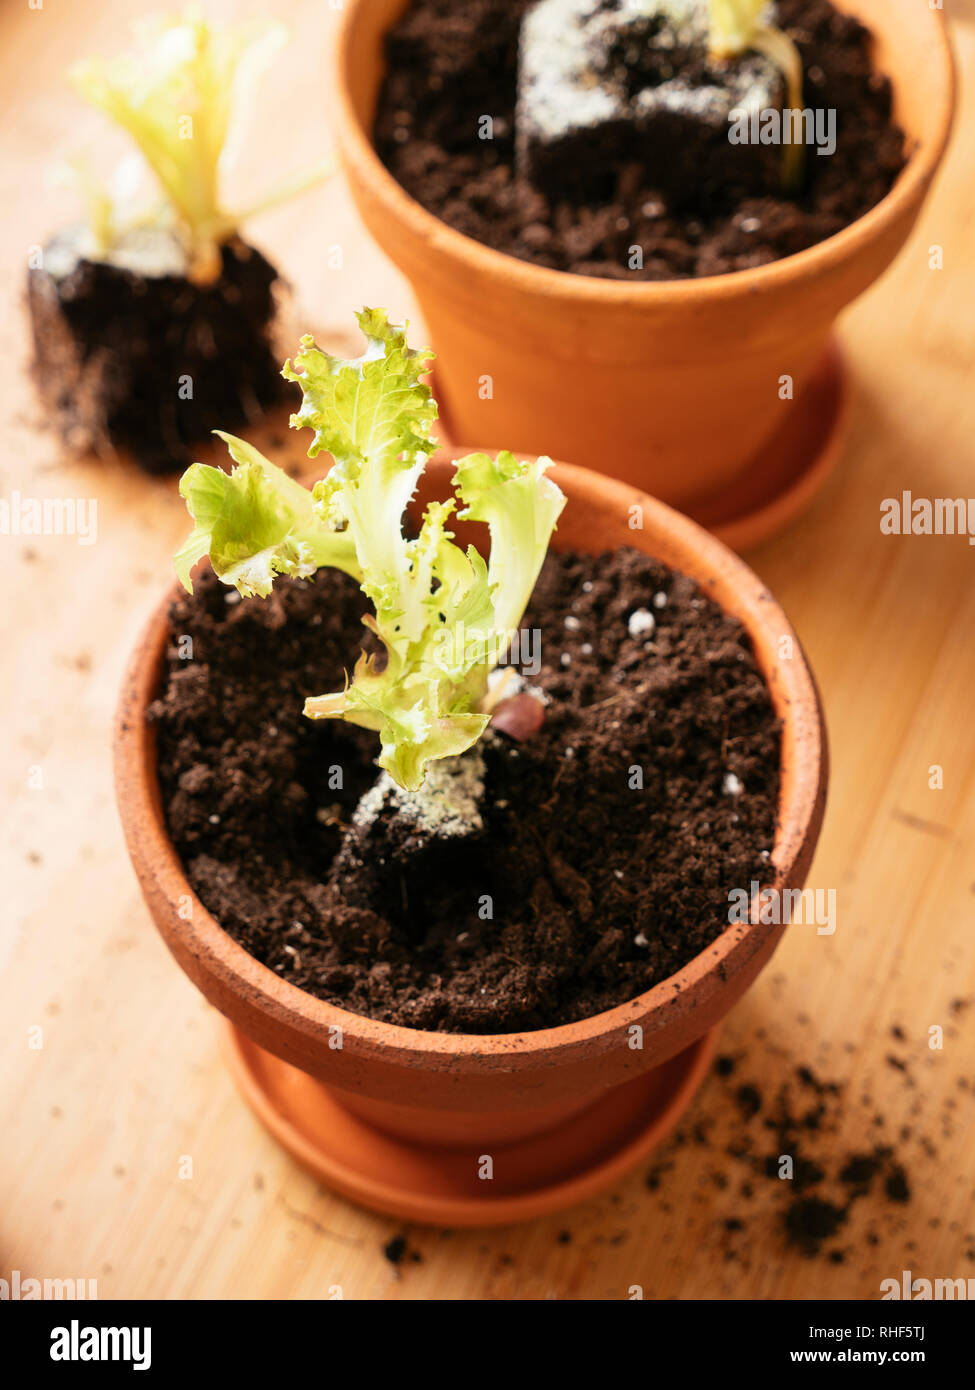 Lettuce scraps with roots replanted in a pot to produce a new lettuce. Stock Photo